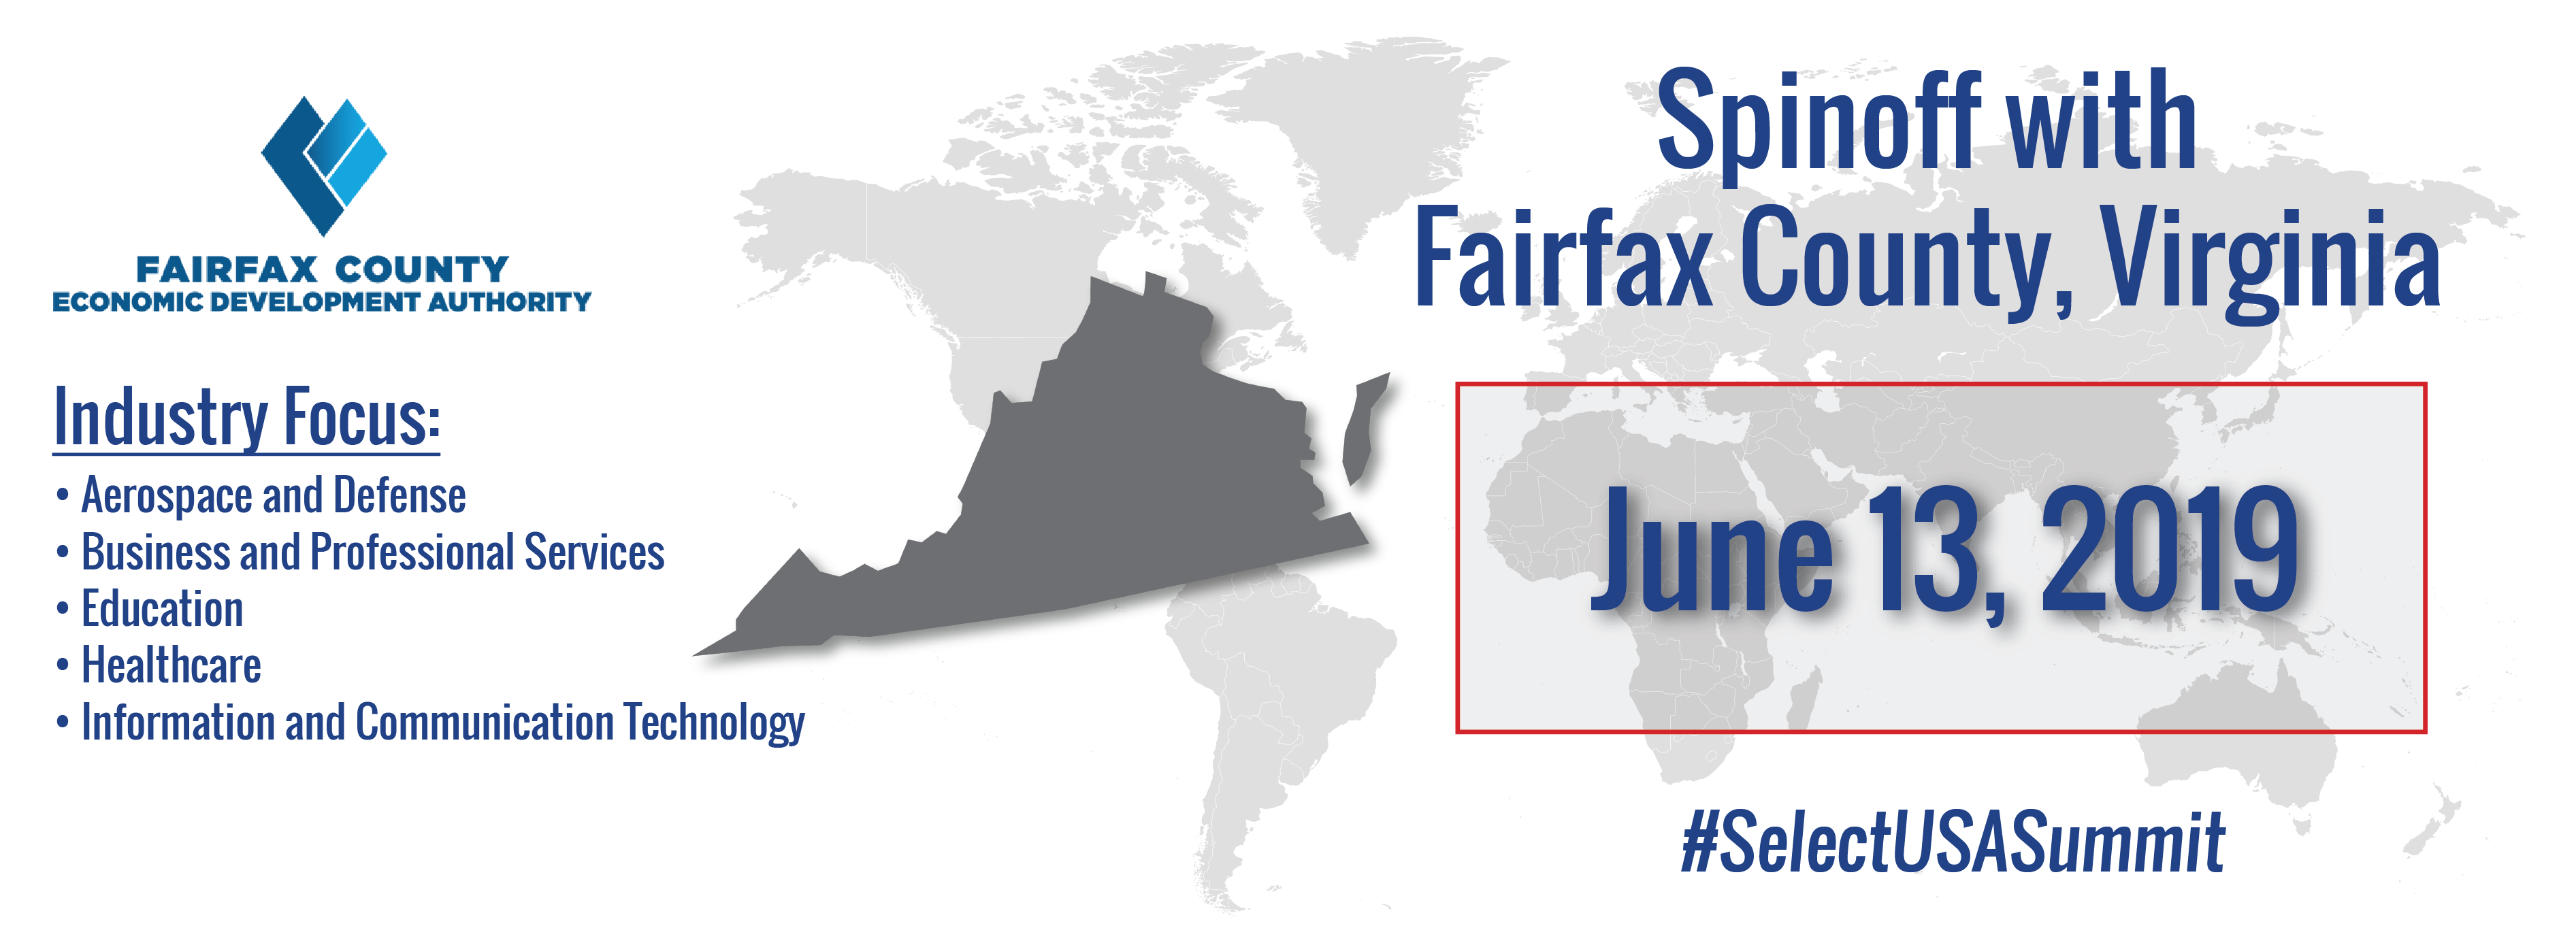 Spinoff Event Graphic - Fairfax County, Virginia